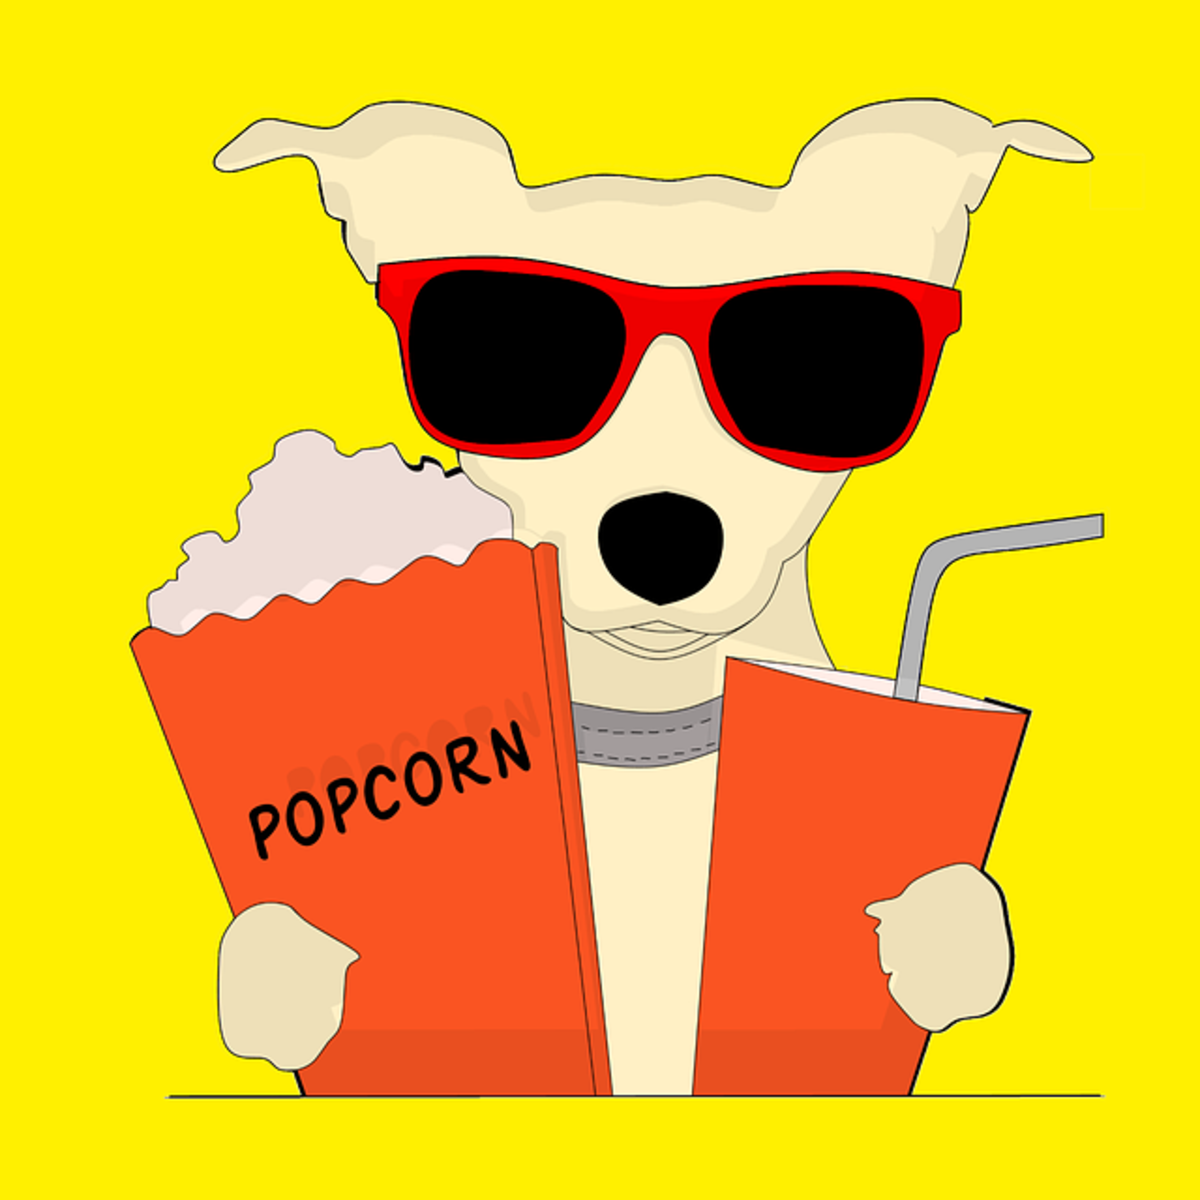 50+ Unique Dog Names From Movies With References